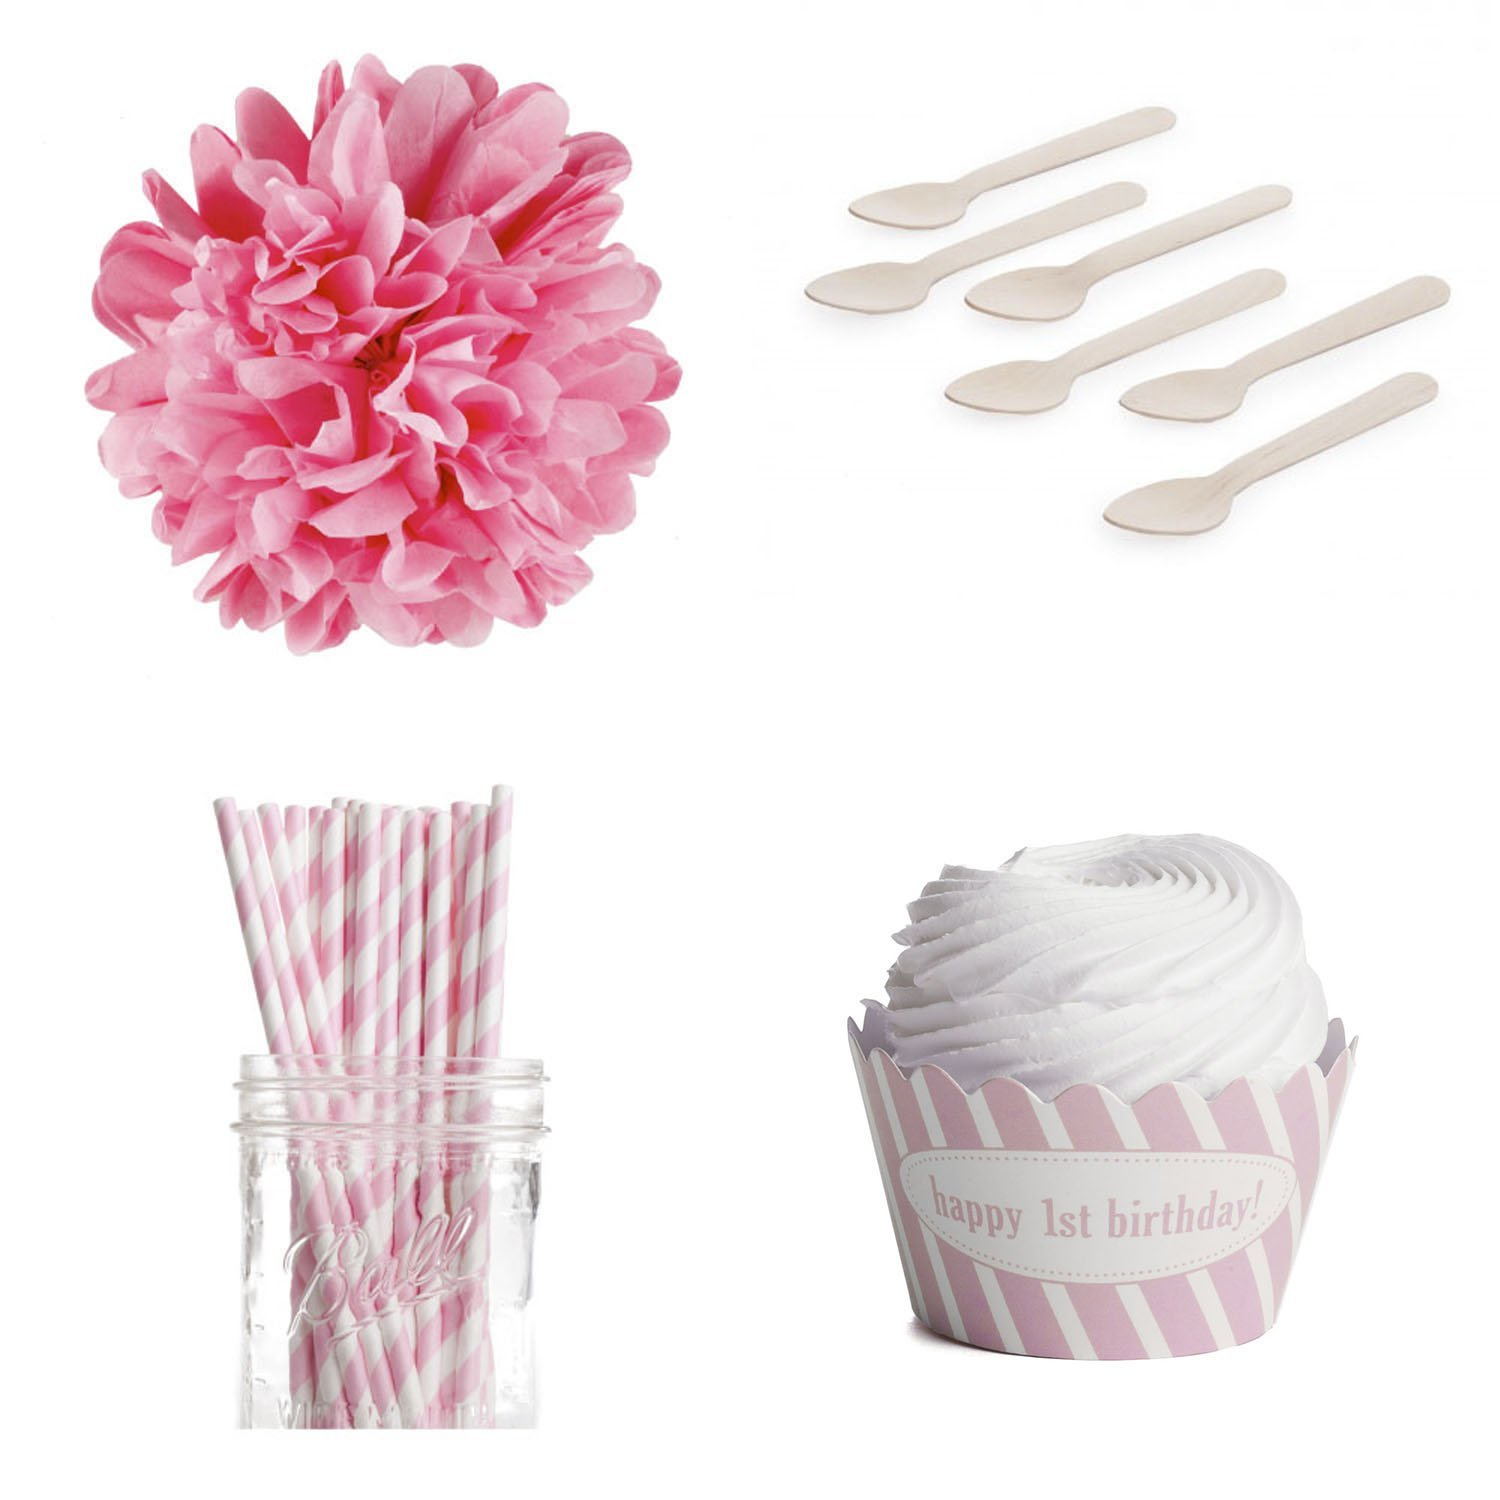 Dress My Cupcake DMC98106 Personalized Dessert Table Party Kit, Striped